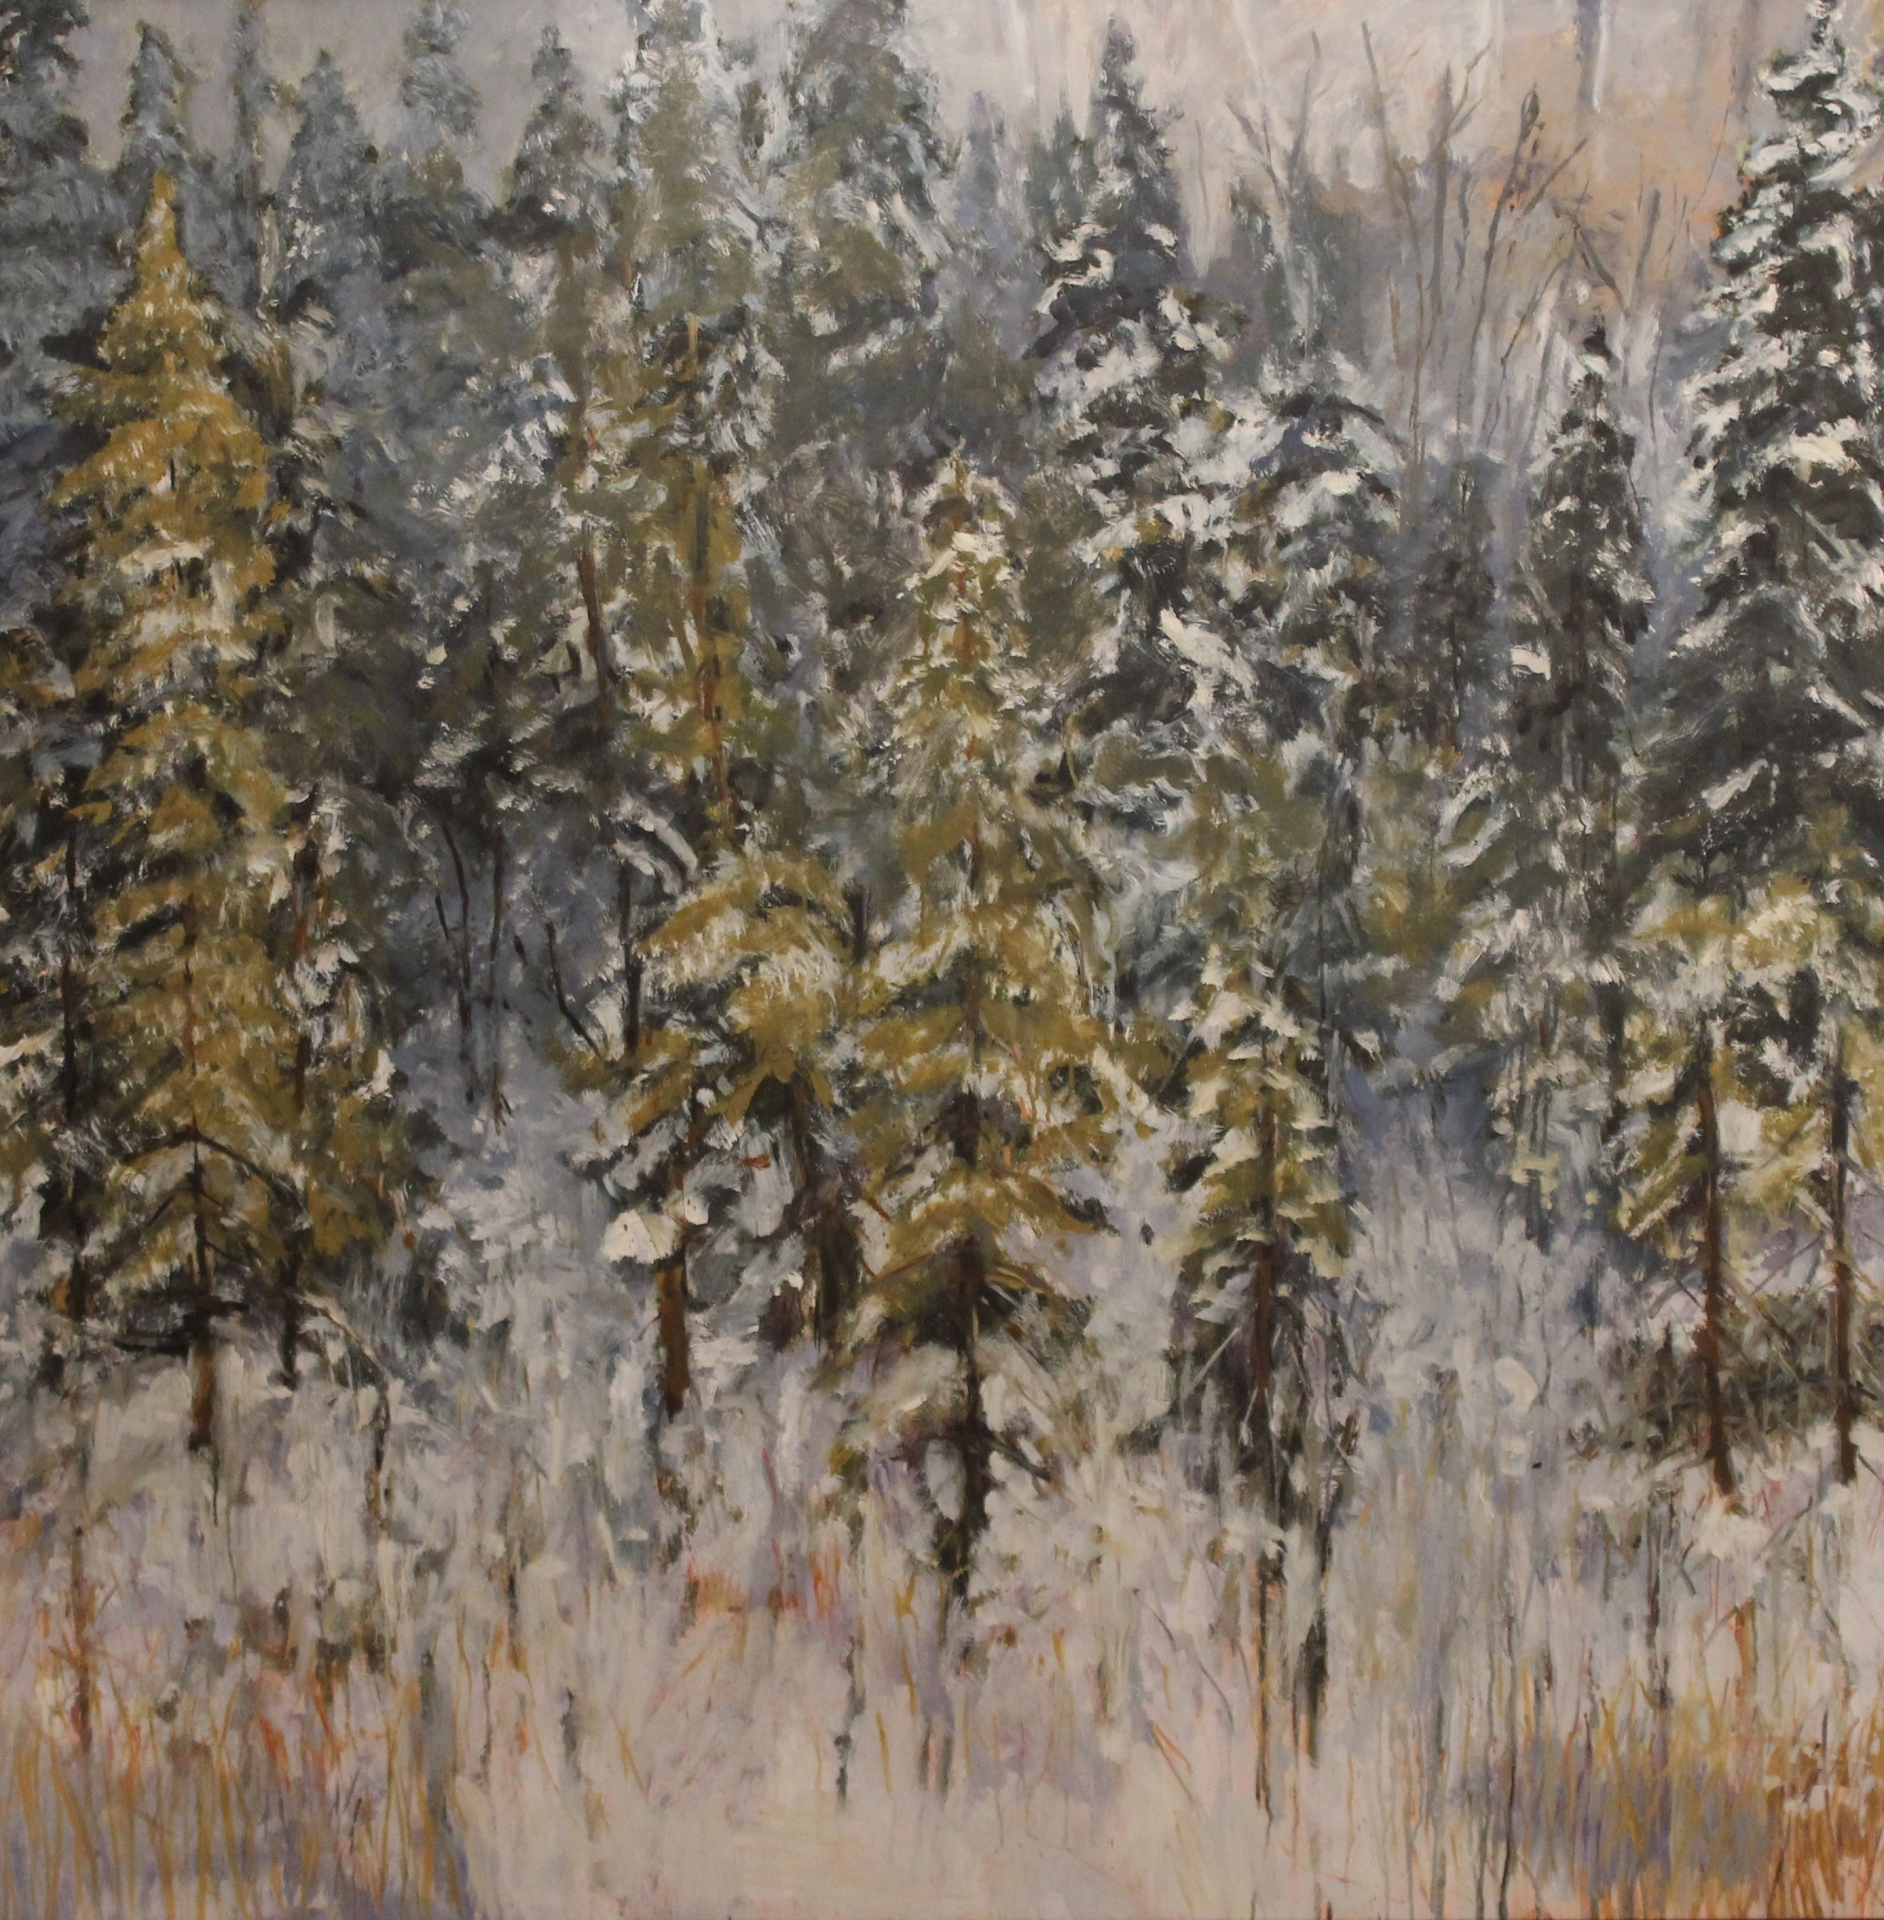 VICTORIA TRAIL PARK - 48 X 48 - OIL ON PANEL 2009